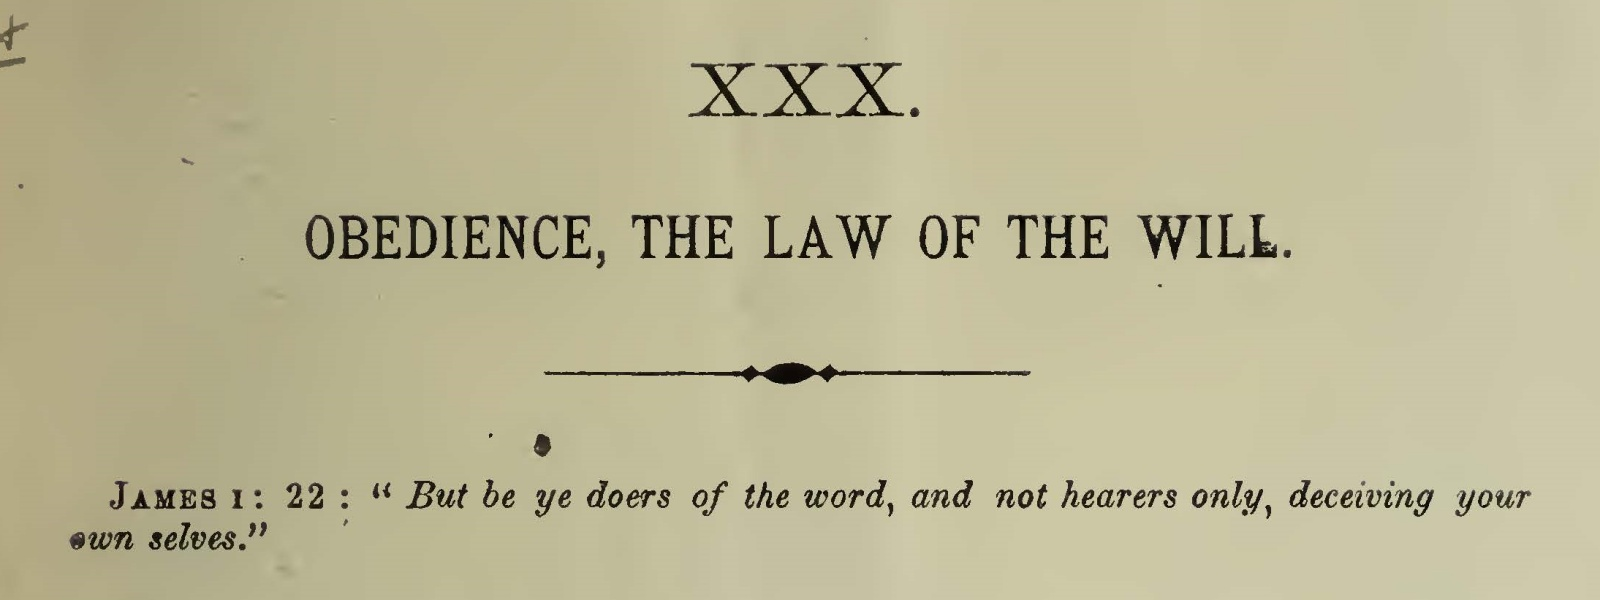 Palmer, Benjamin Morgan, Obedience, the Law of the Will Title Page.jpg